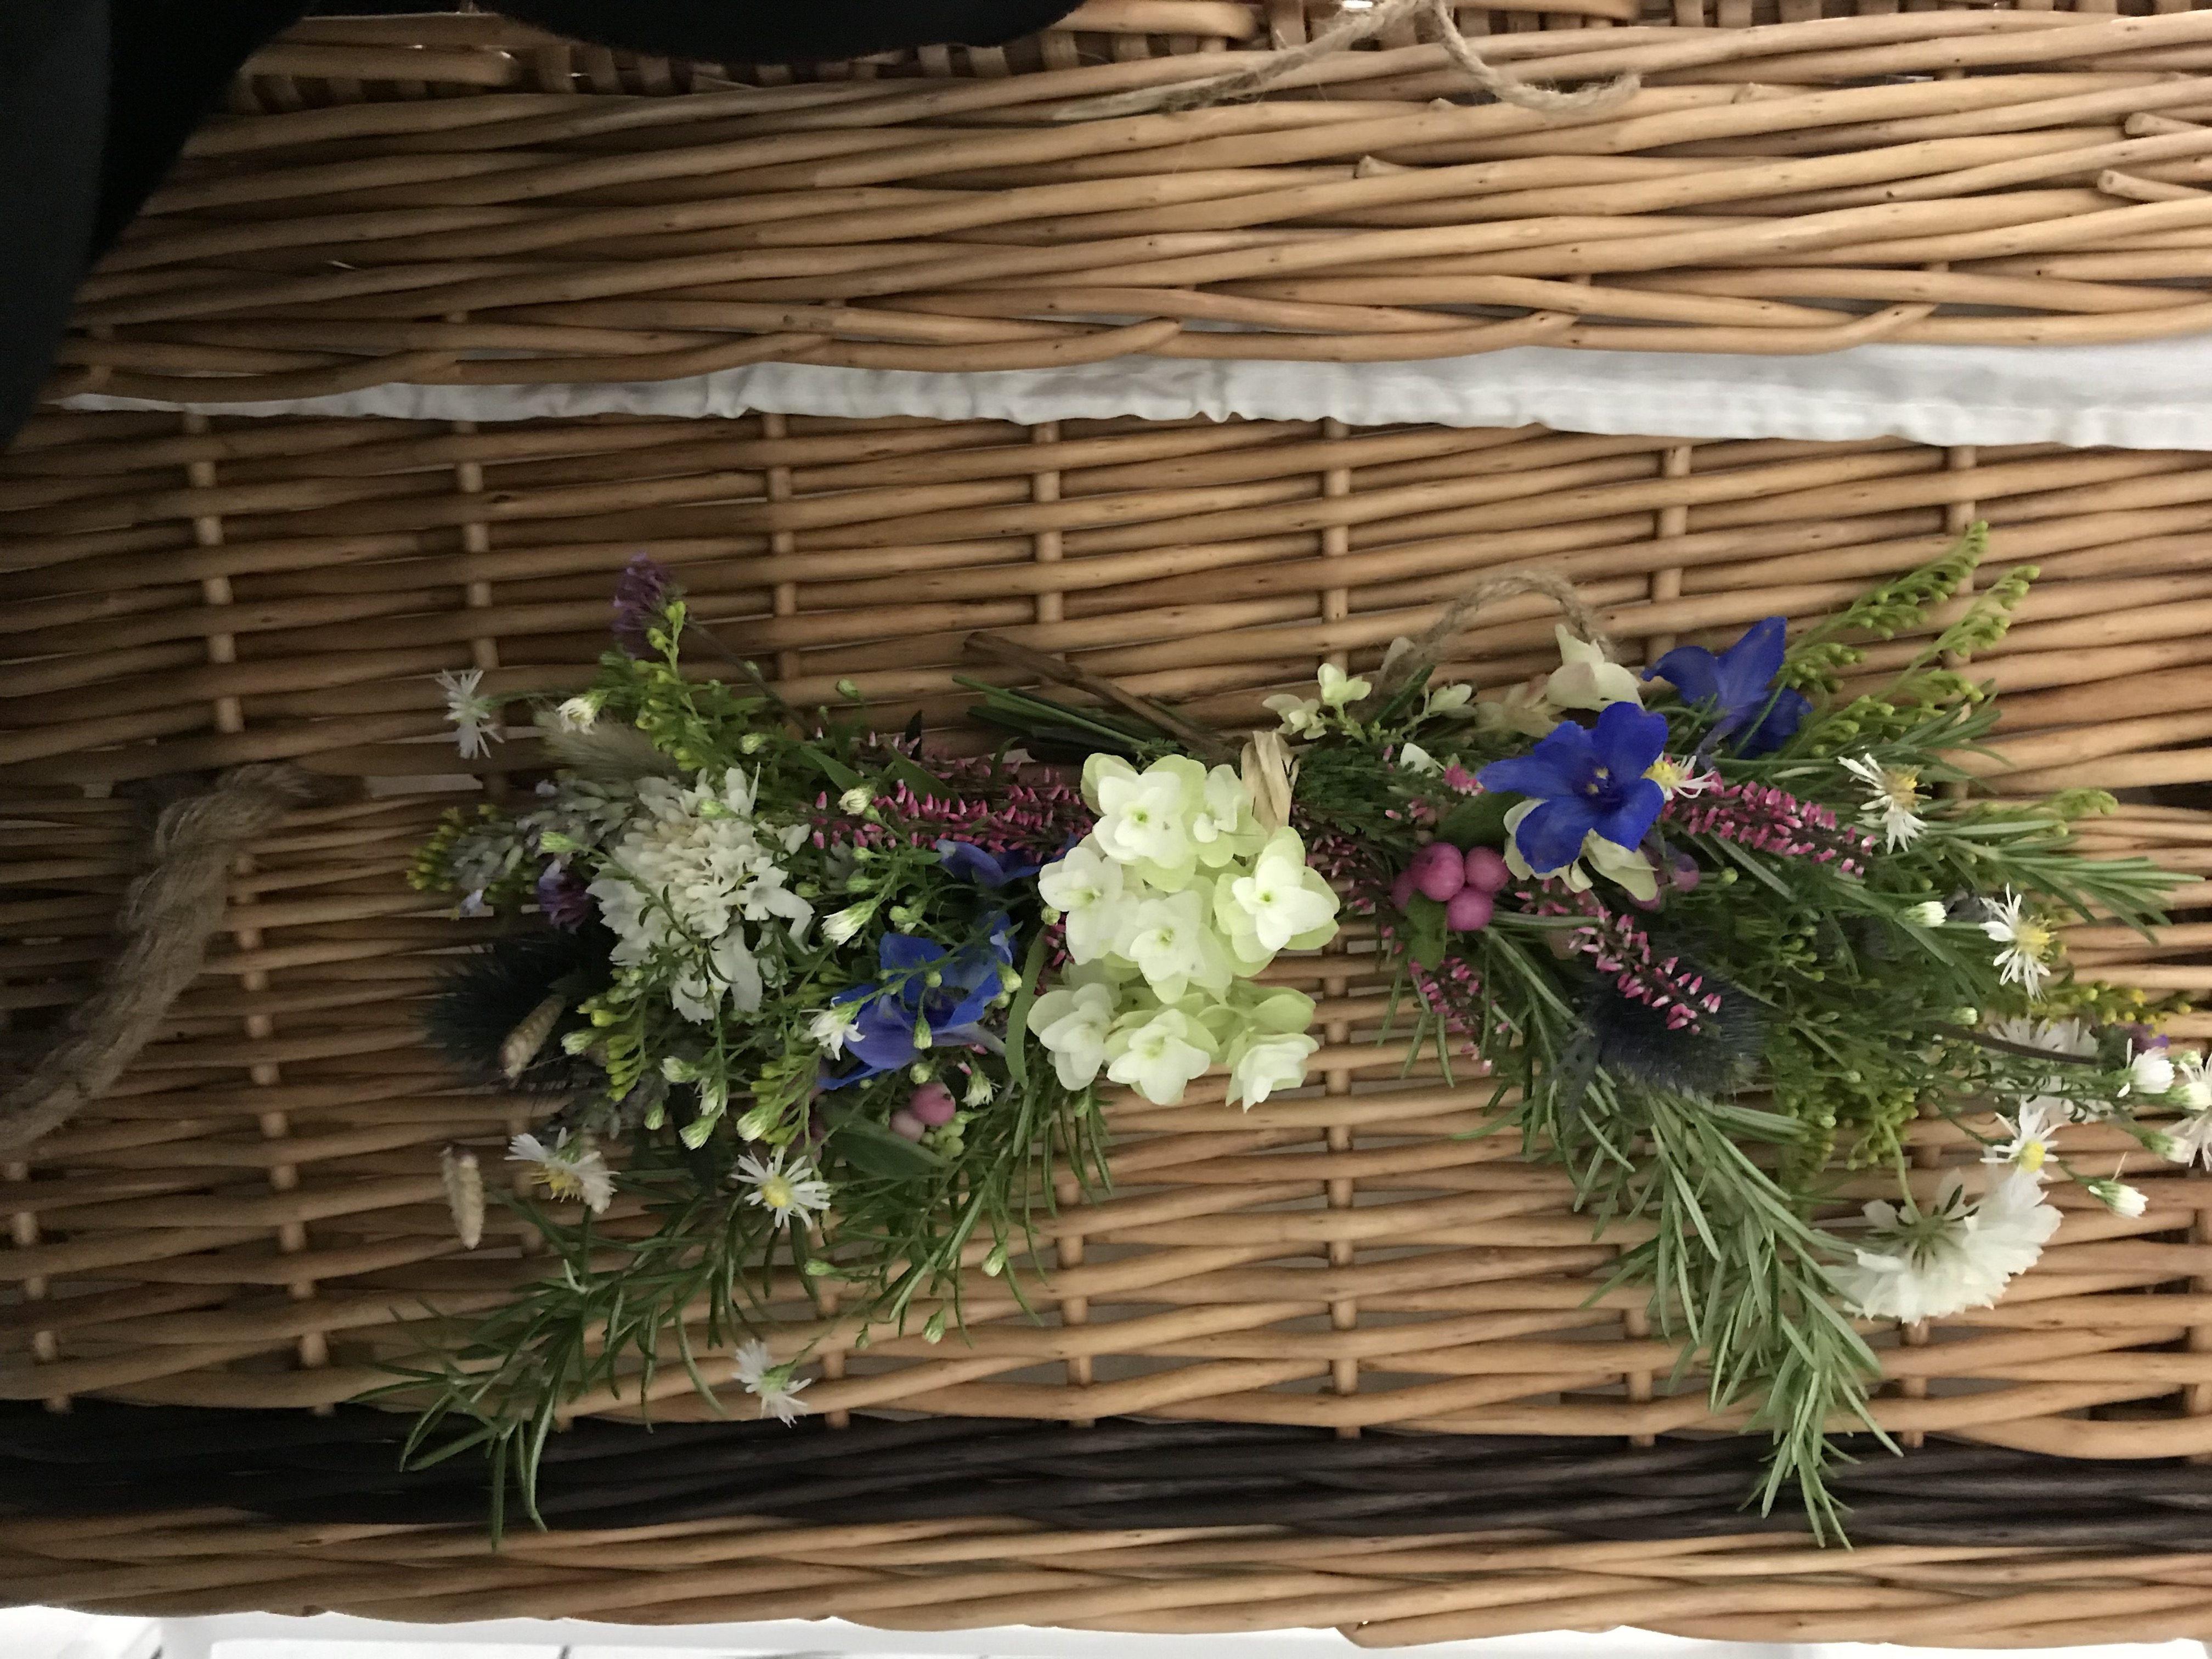 Natural wildflower style swags with heather and rosemary to decorate a willow coffin.